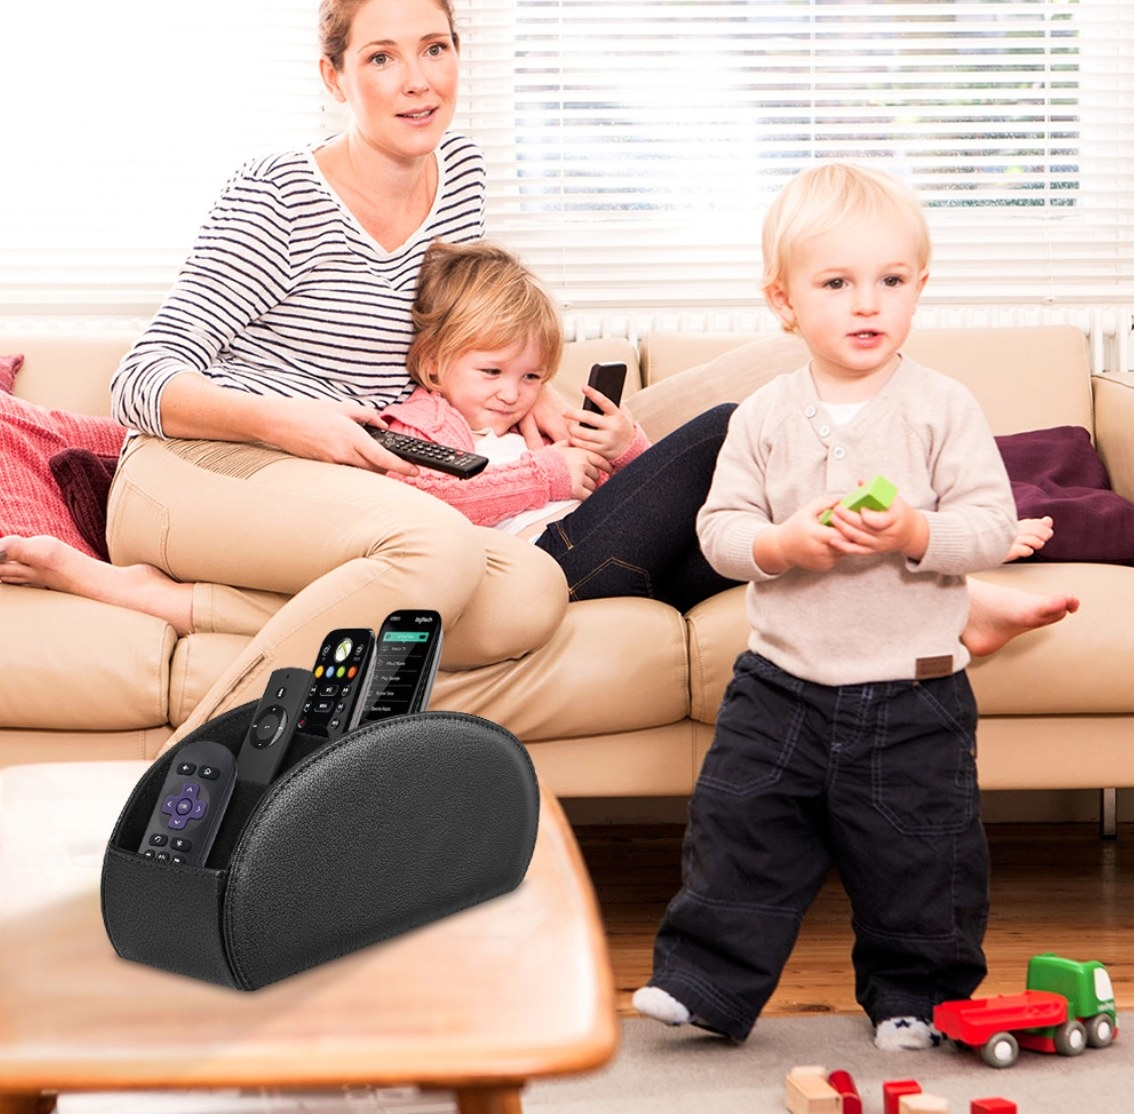 The multi-remote control holder